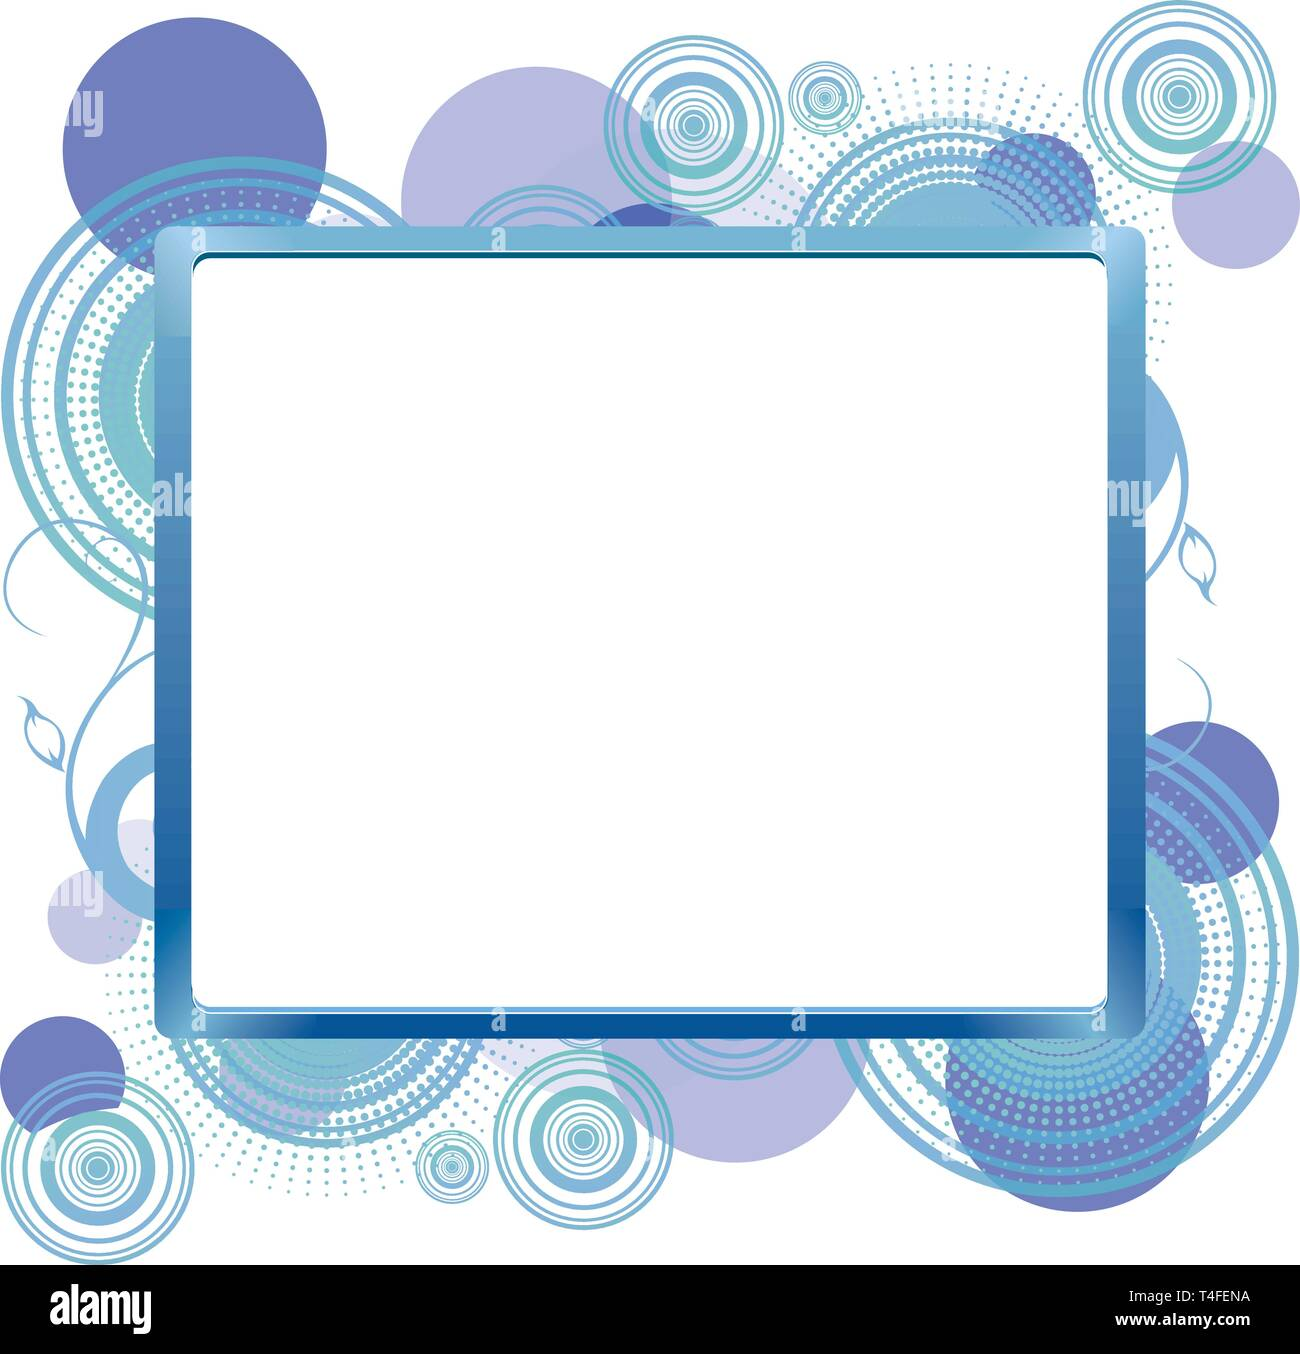 Frame for text on abstract background, vector illustration - Stock Image